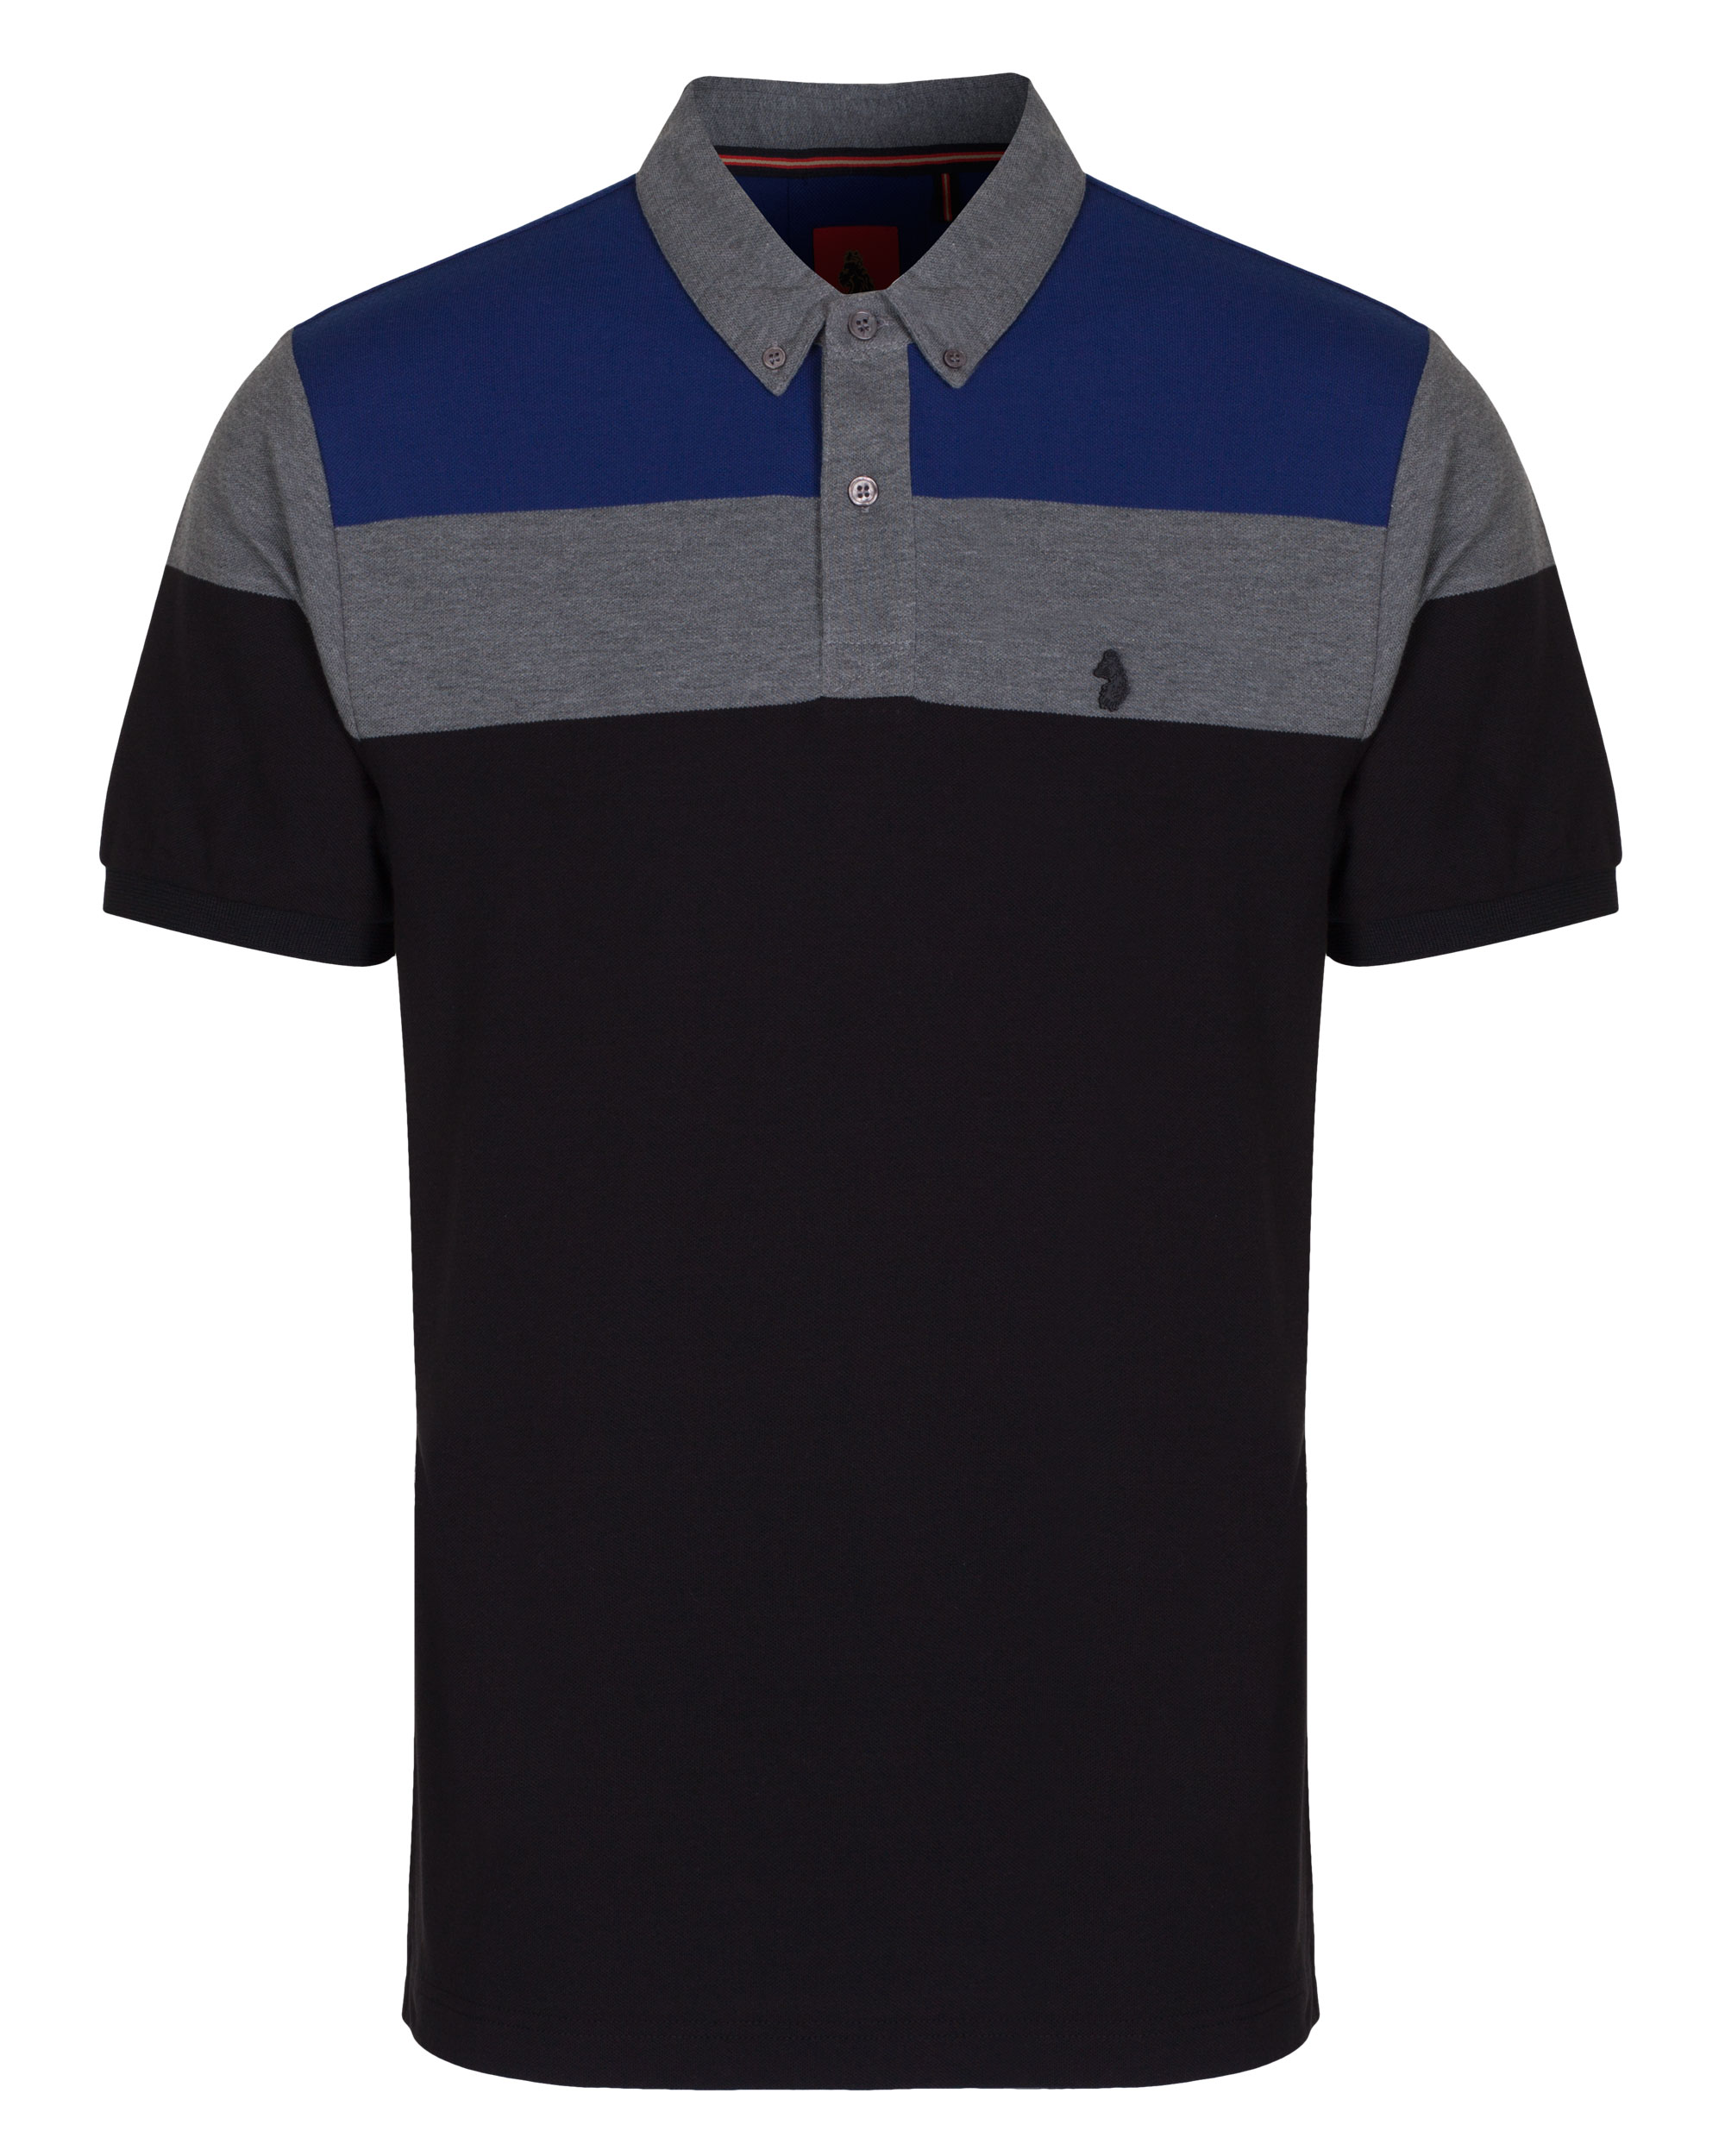 Luke 1977 sport mens mickey freedoms panel polo shirt ebay for Luke donald polo shirts